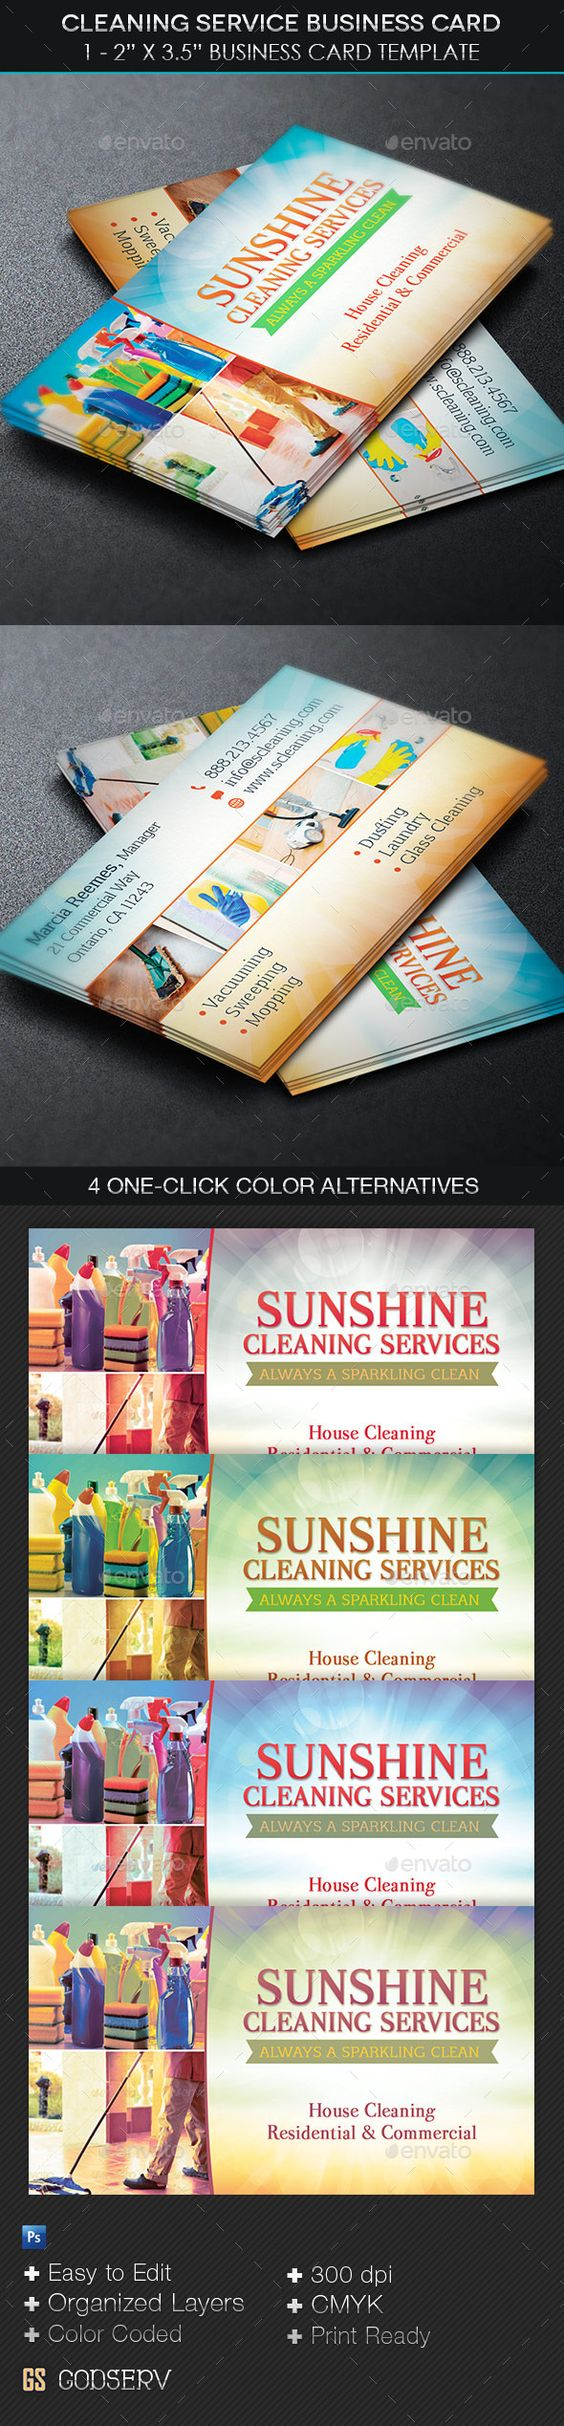 Carpet cleaner vacuum cleaning machine retro large business card carpet cleaner vacuum cleaning machine retro large business card carpet cleaning business cards pinterest business cards vacuums and carpet cleaning magicingreecefo Images